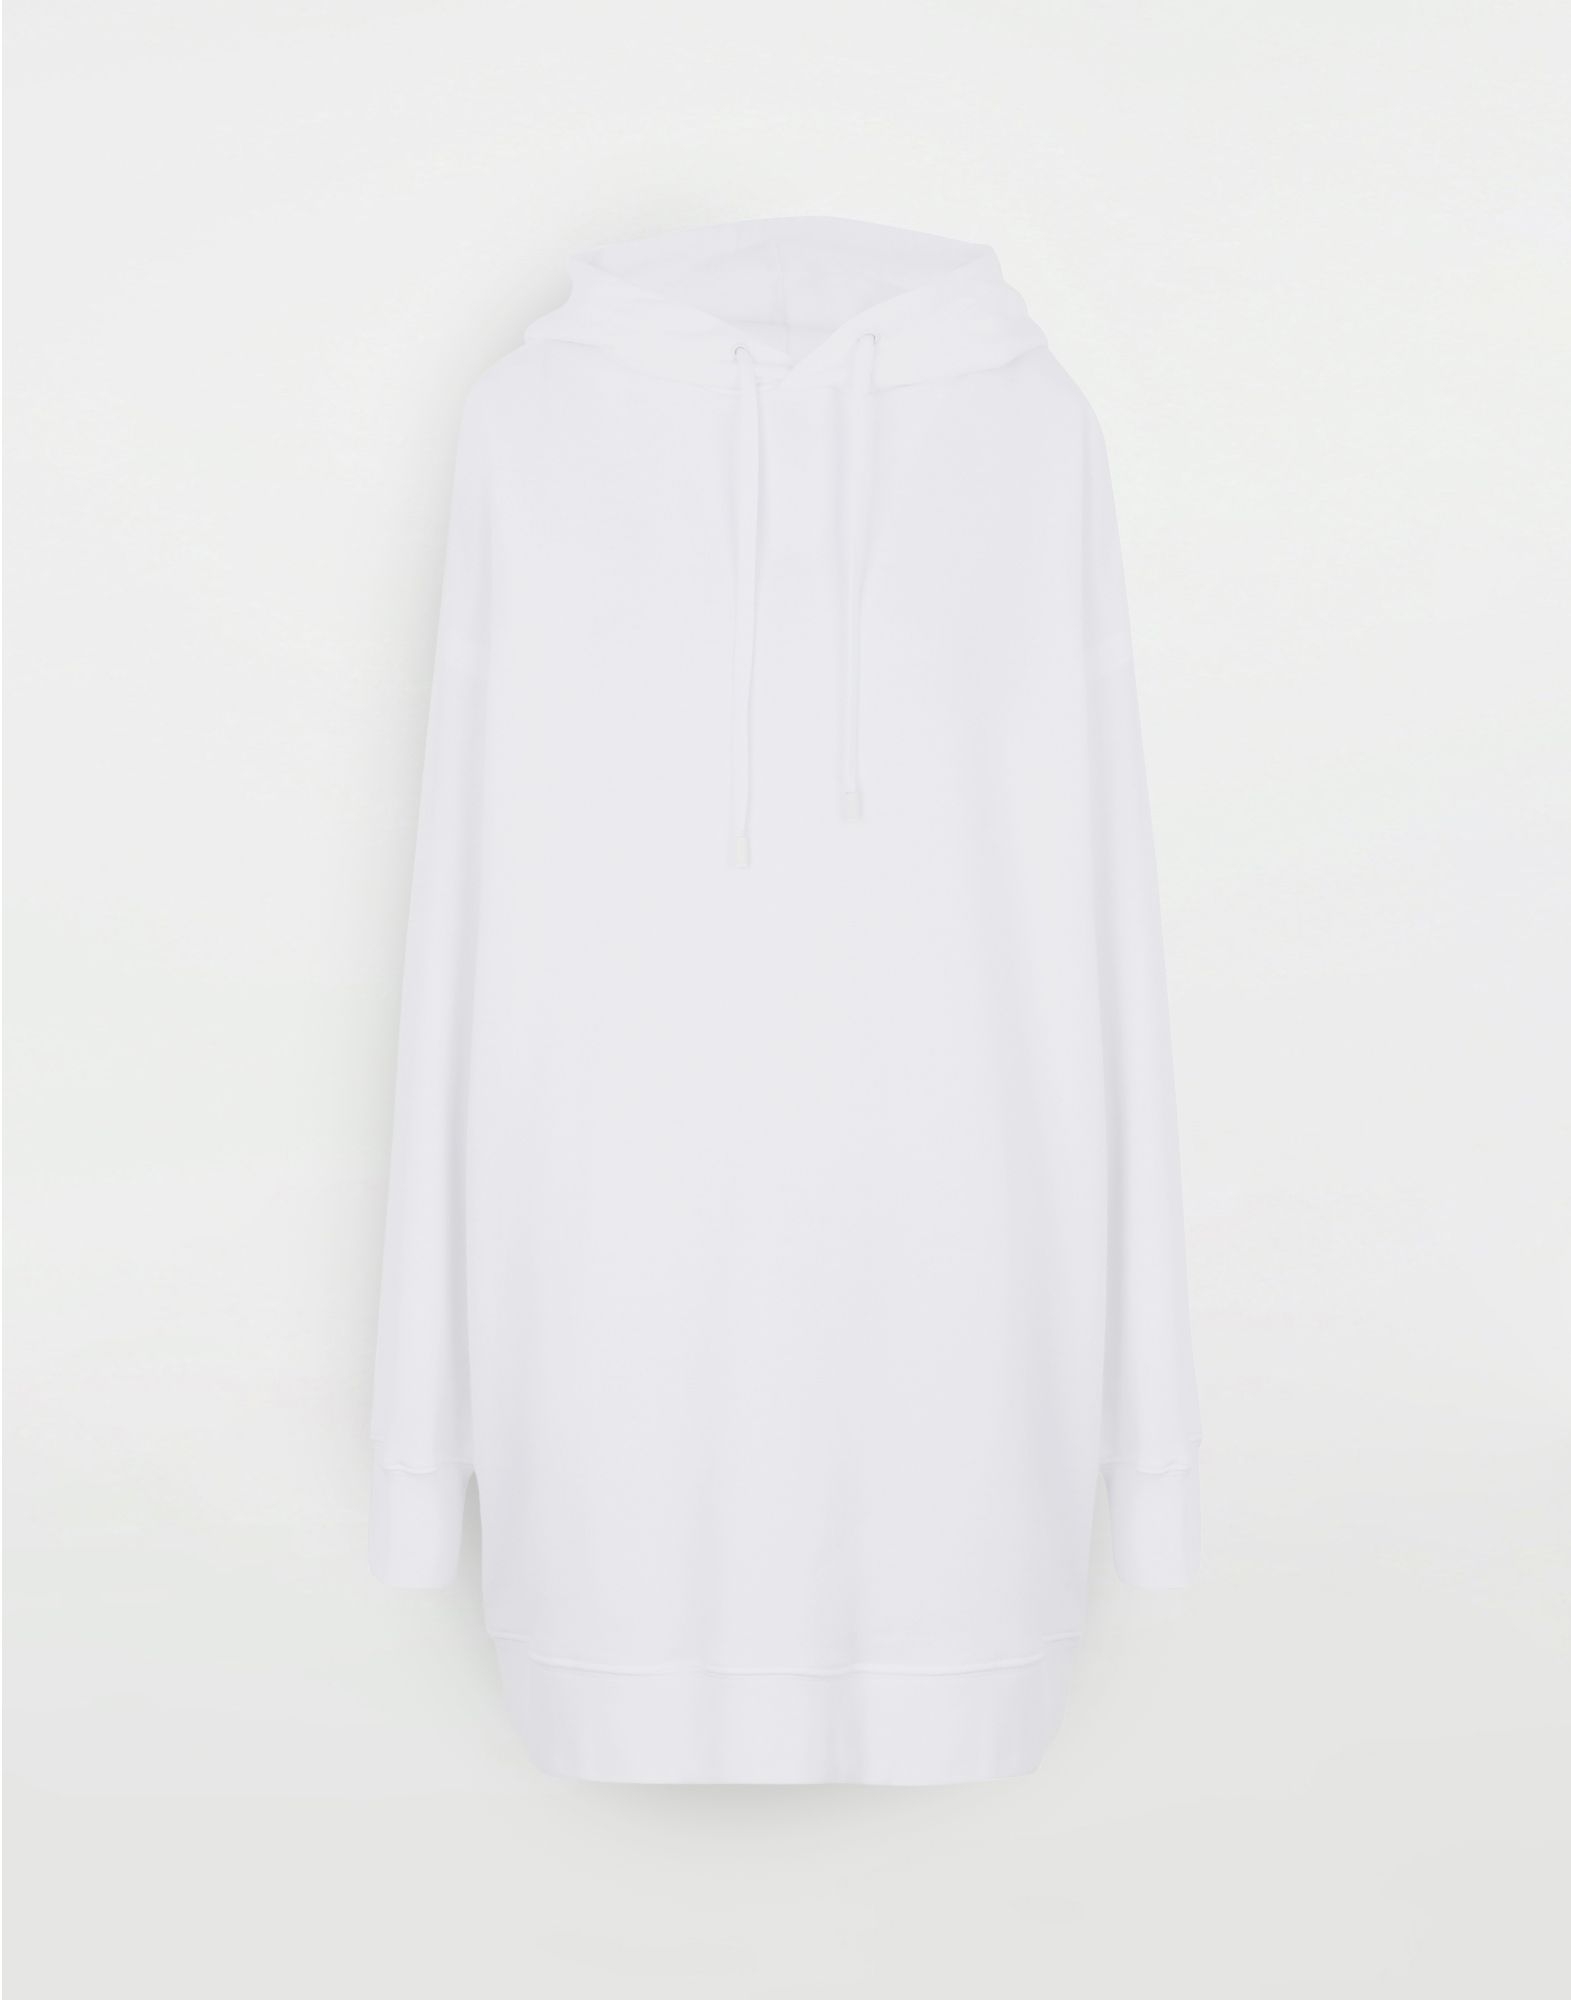 MAISON MARGIELA Long-line hooded sweatshirt Hooded sweatshirt Woman f